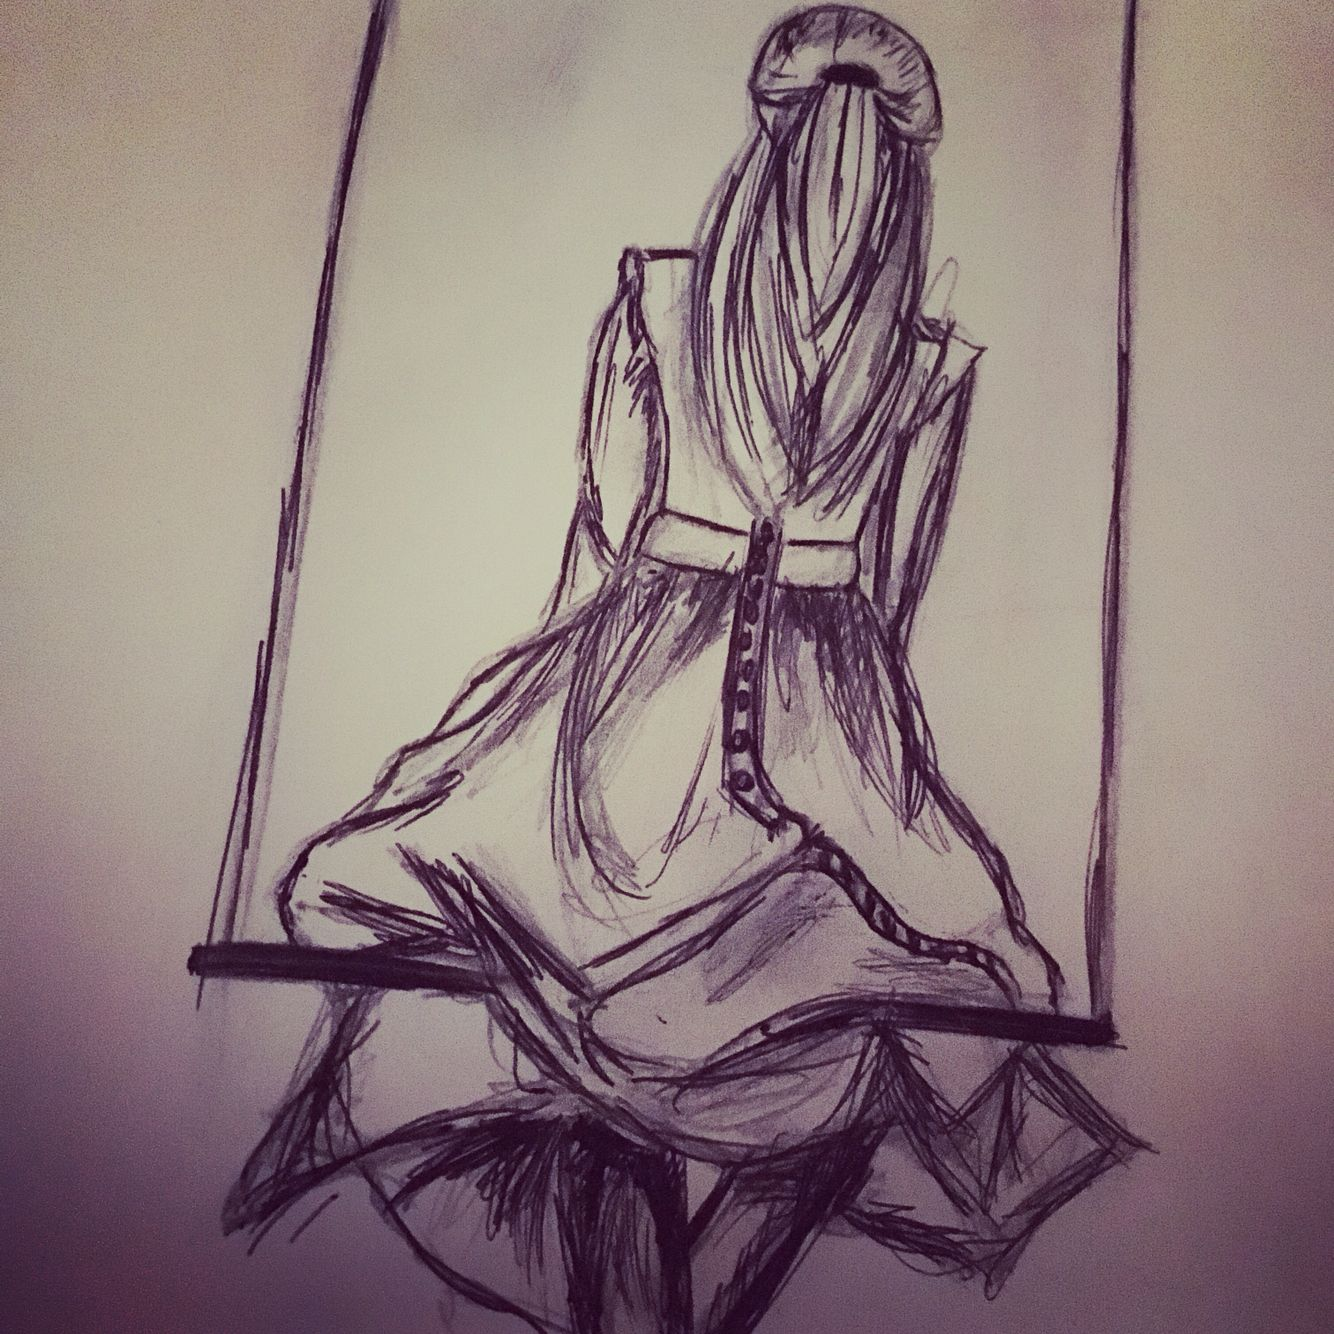 #girl #lonely #swing #drawing #shading #pen #pencil